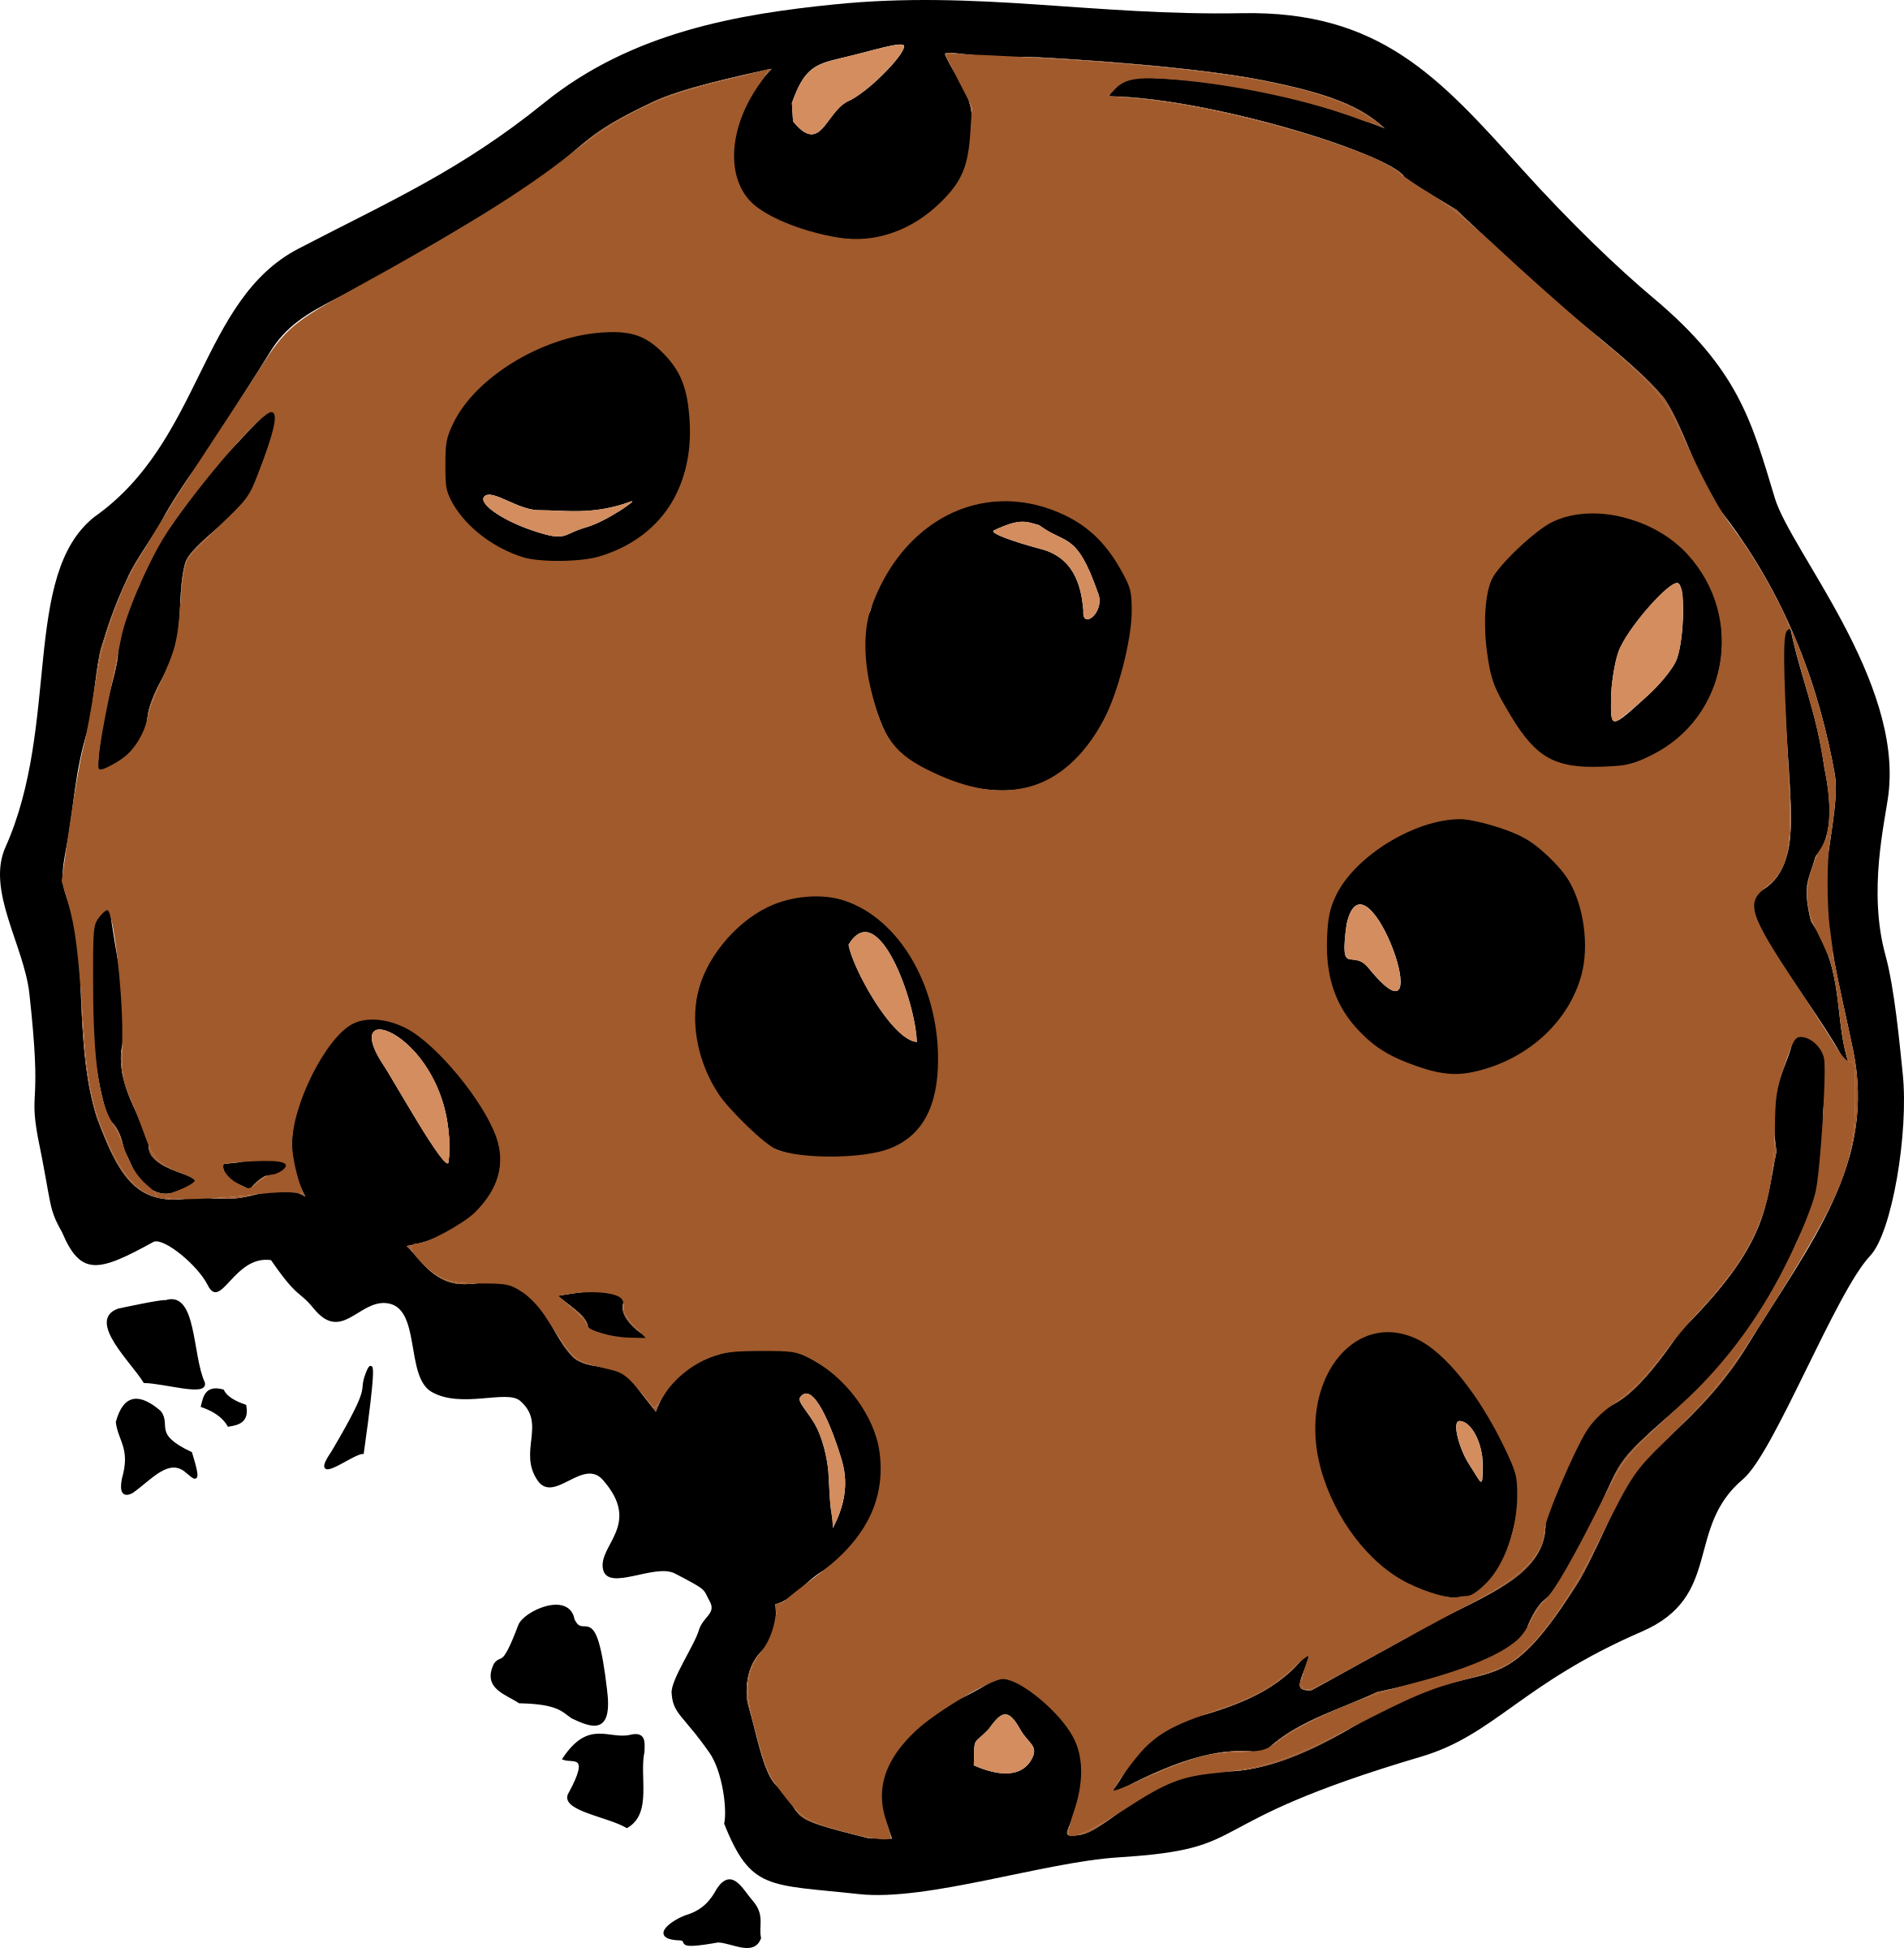 Clipart cookies. Cookie big image png